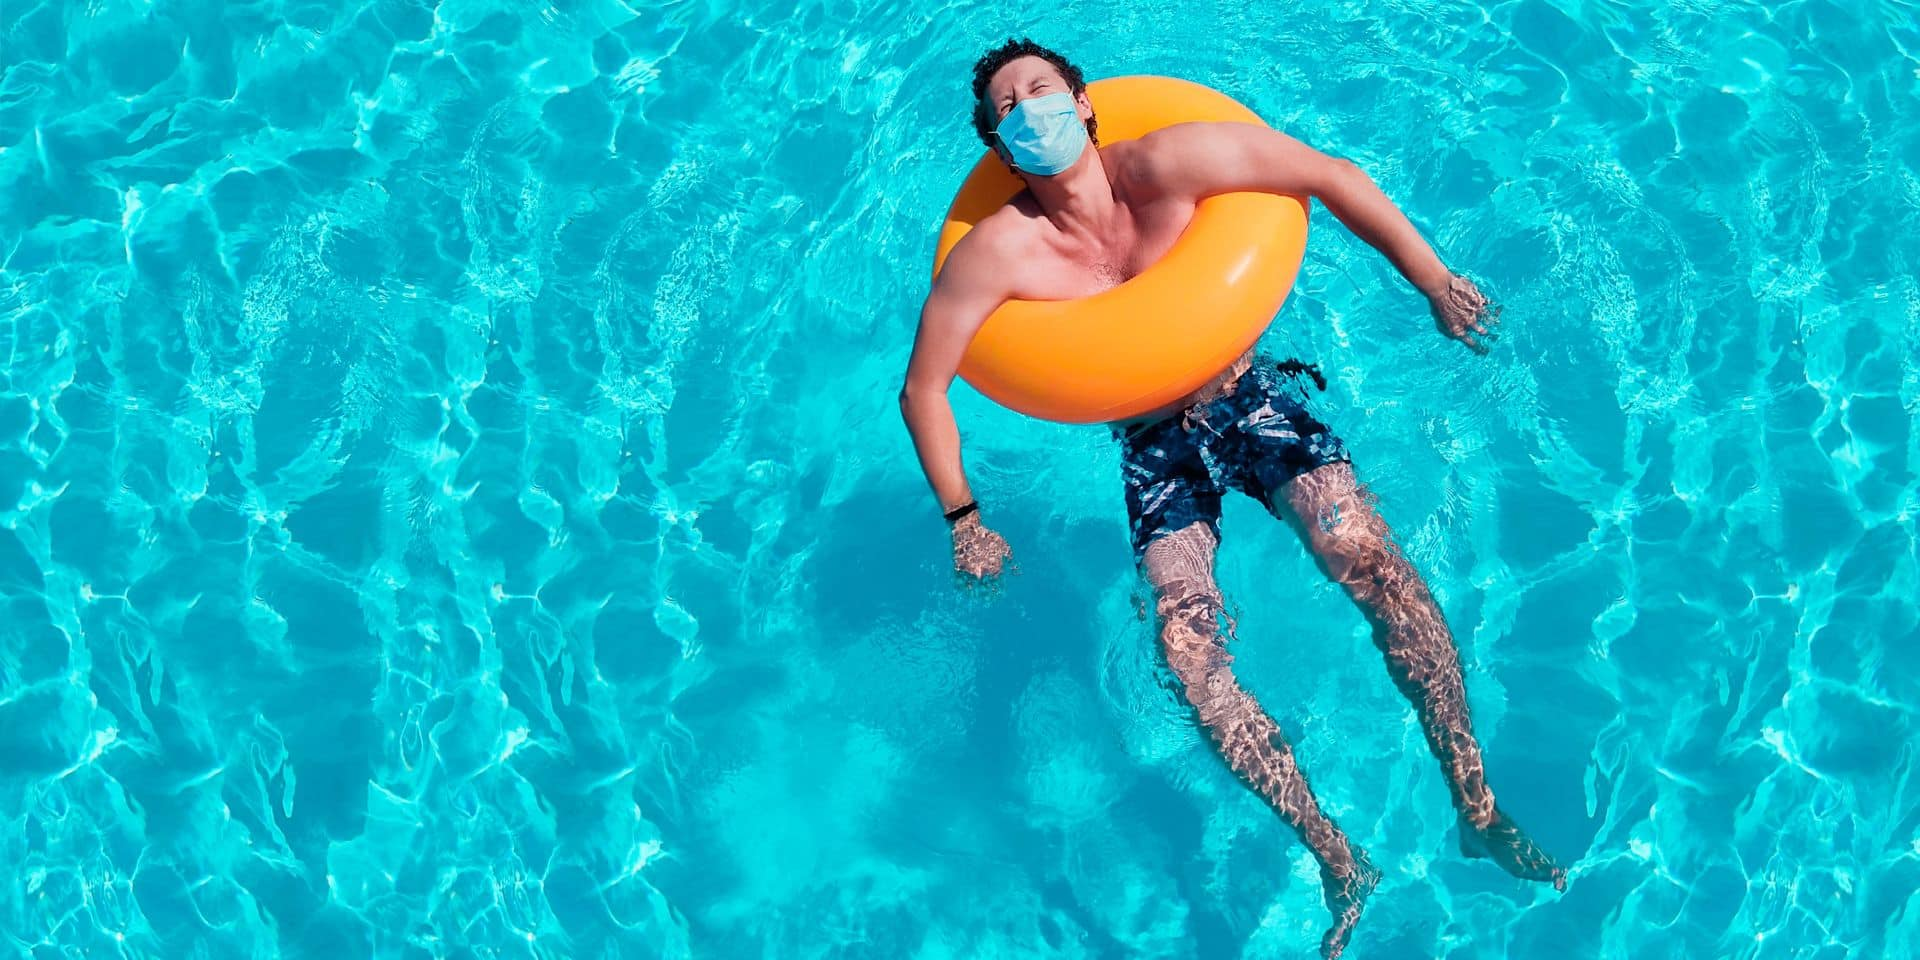 Young,Man,Is,Floating,In,The,Pool,With,A,Protective